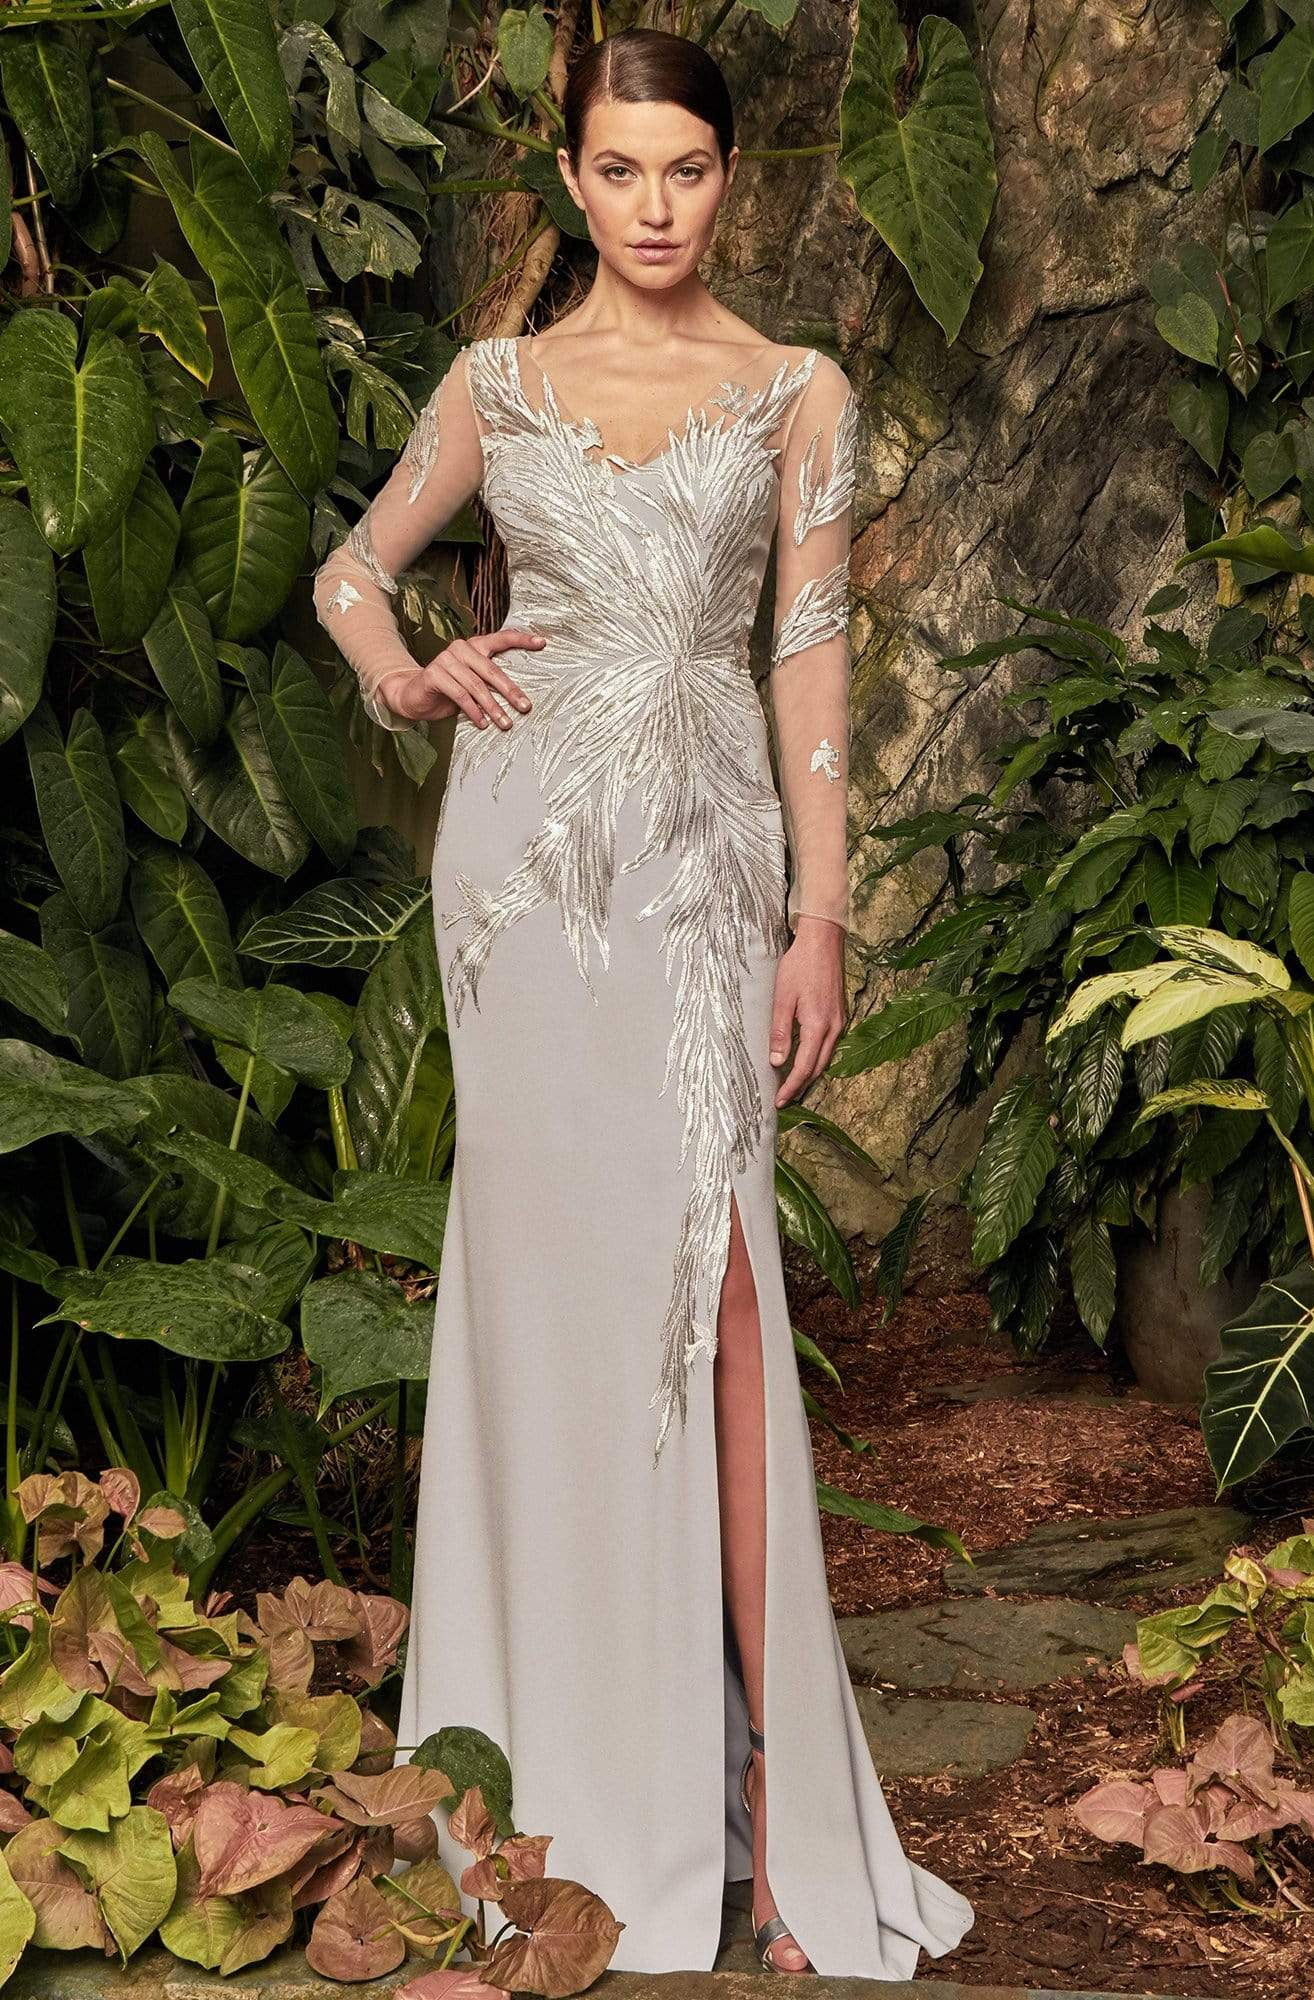 Alexander by Daymor - 960 Illusion Sleeves Sequin Lace Applique Sheath Gown Mother of the Bride Dresses 2 / Pearl Grey